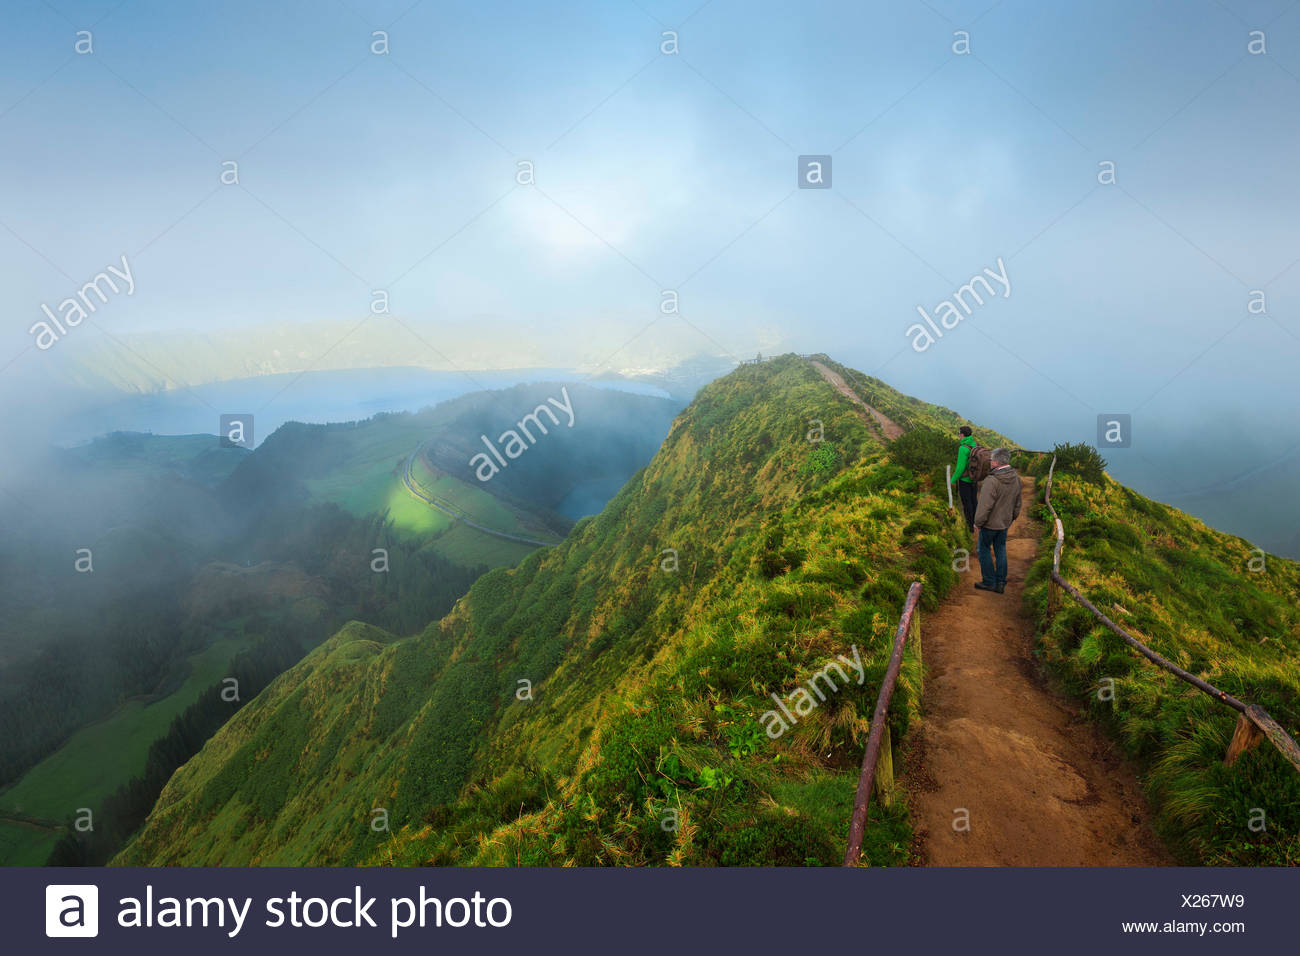 Lookout on Sete Cidades, Sao Miguel, the Azores, Portugal - Stock Image